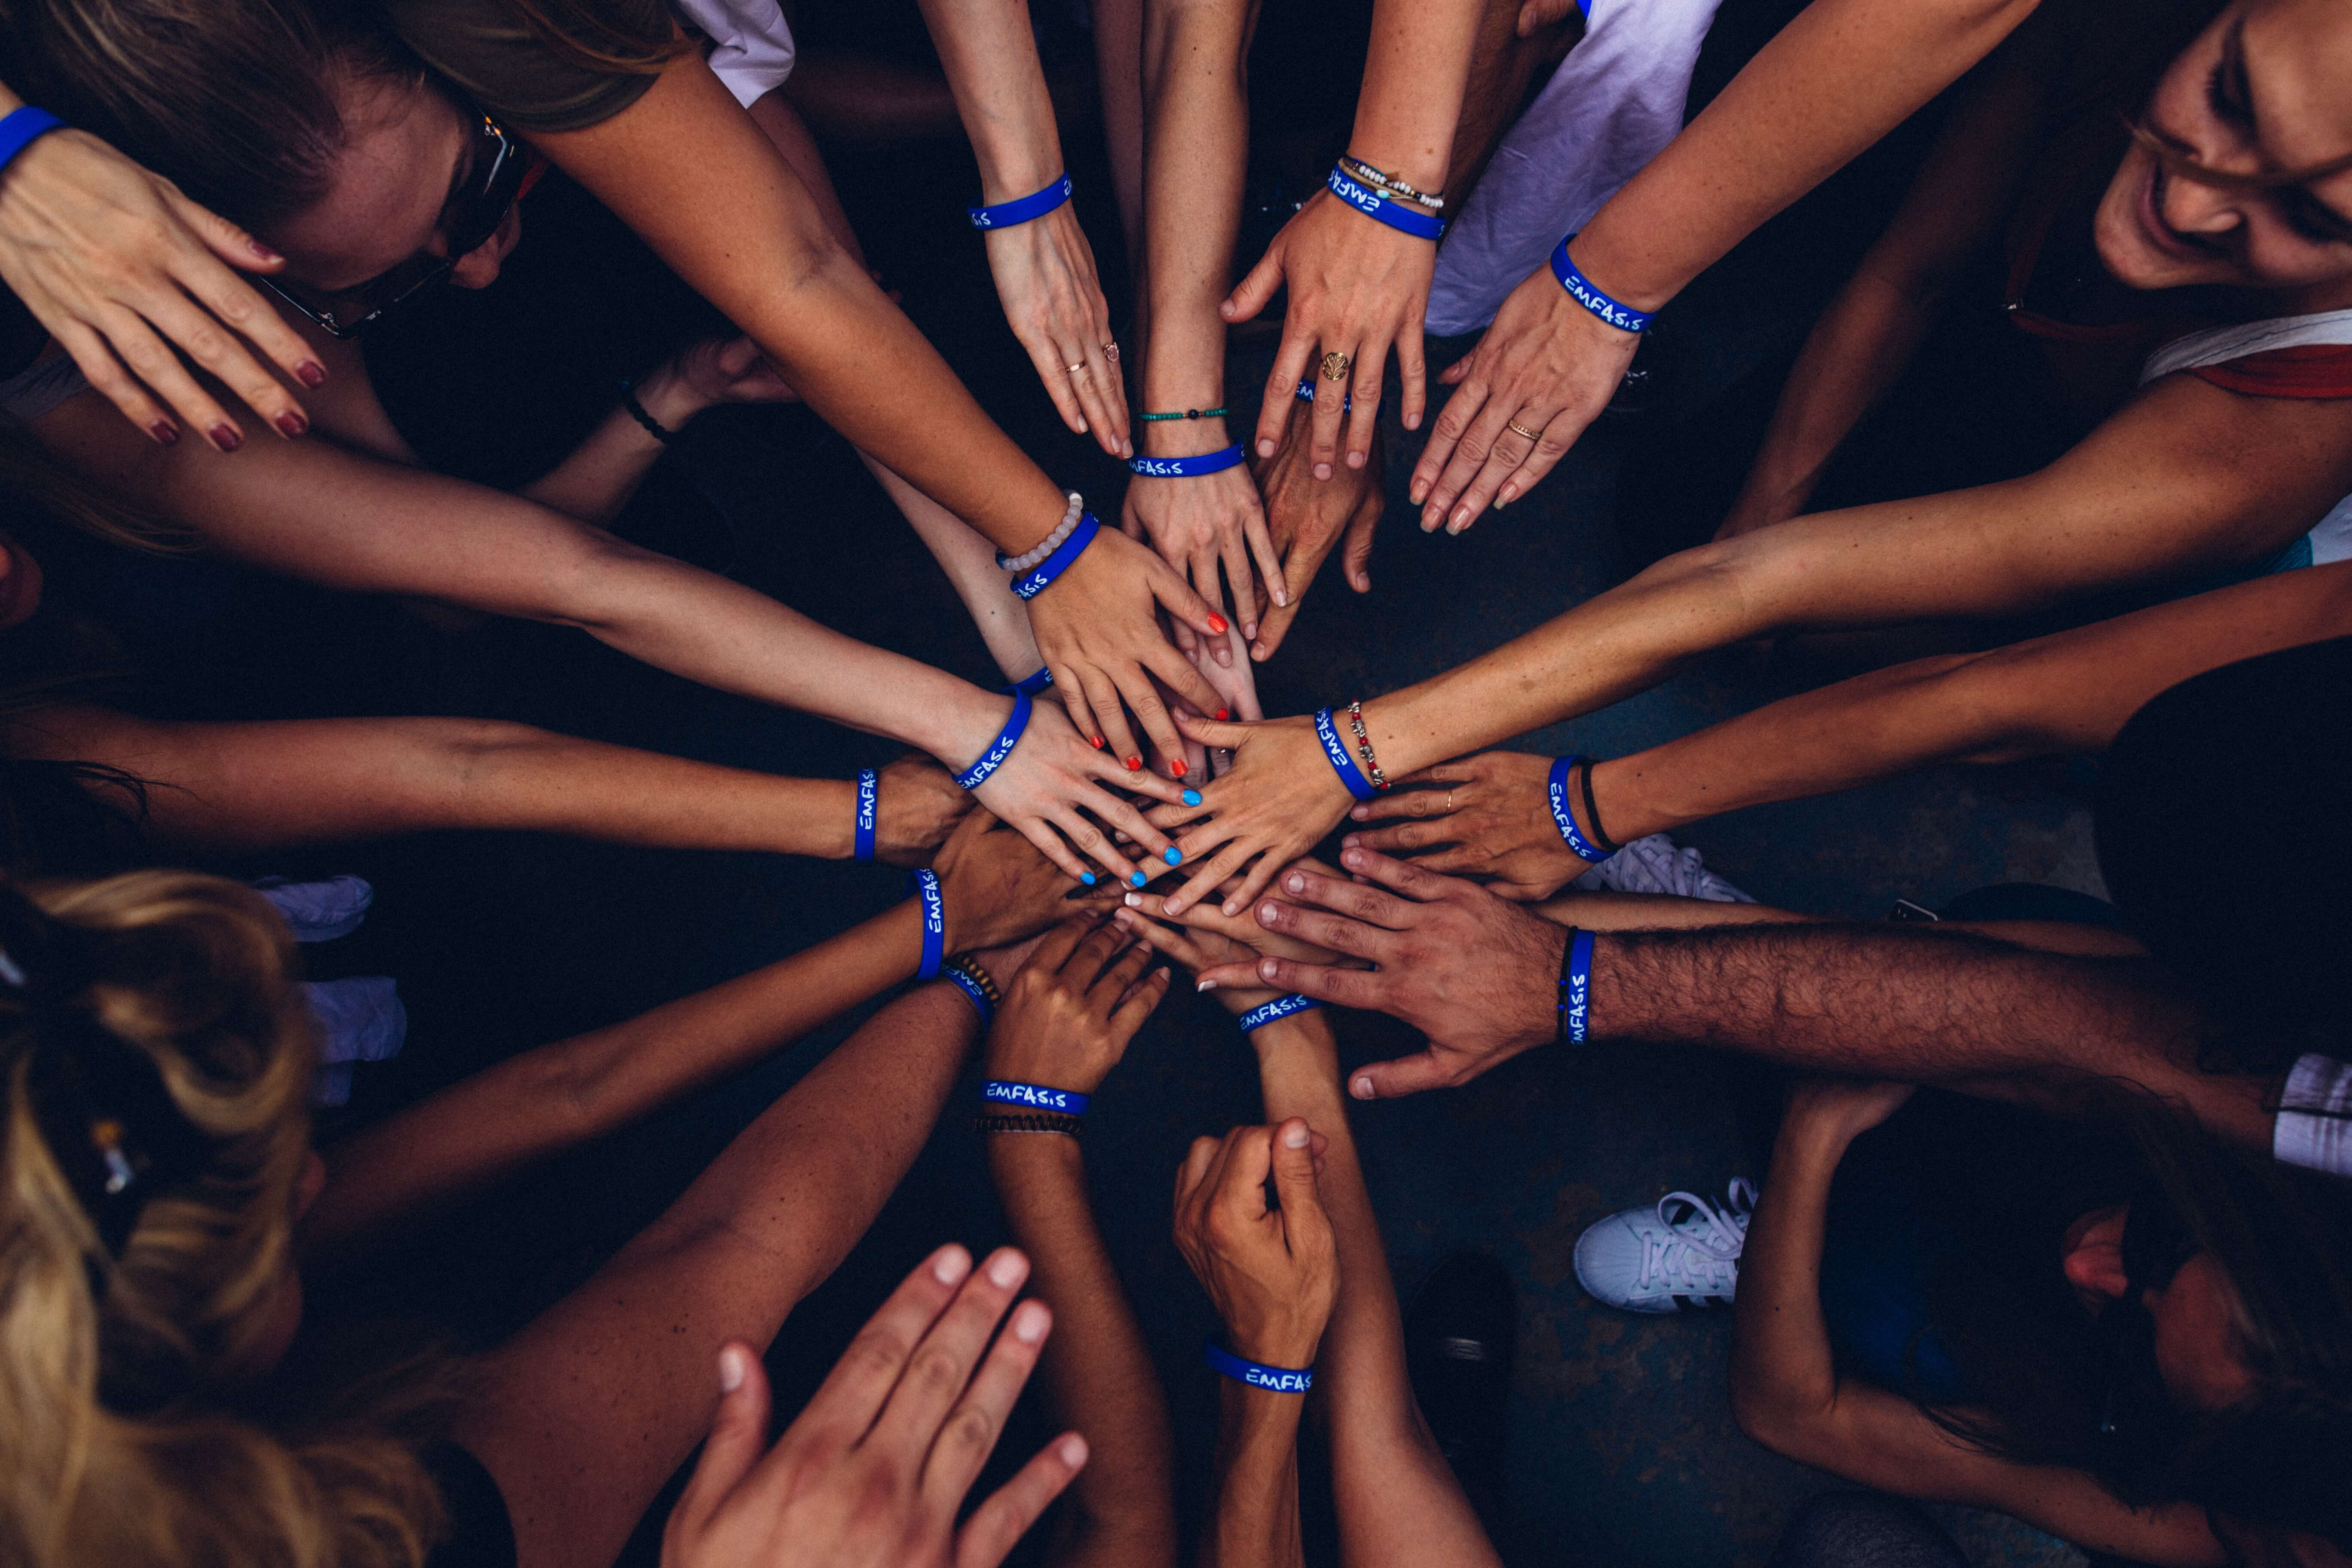 Diverse set of people all putting hands together, united.